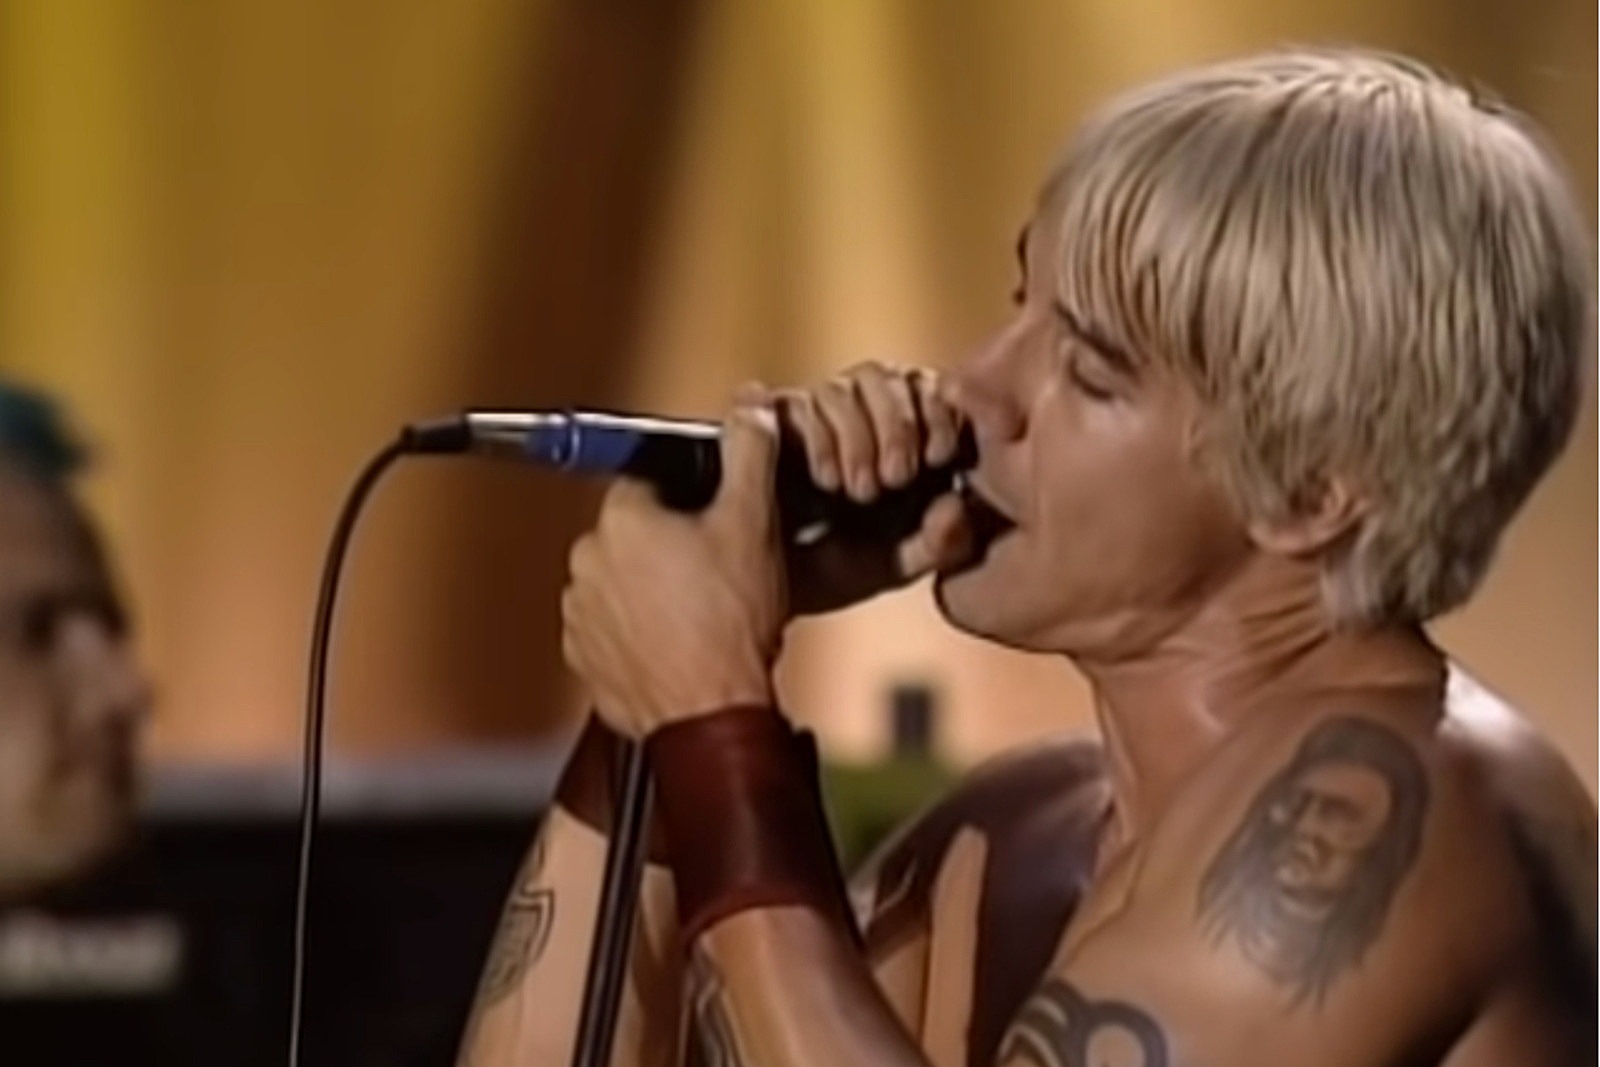 Do Red Hot Chili Peppers Regret Playing 'Fire' at Woodstock '99?